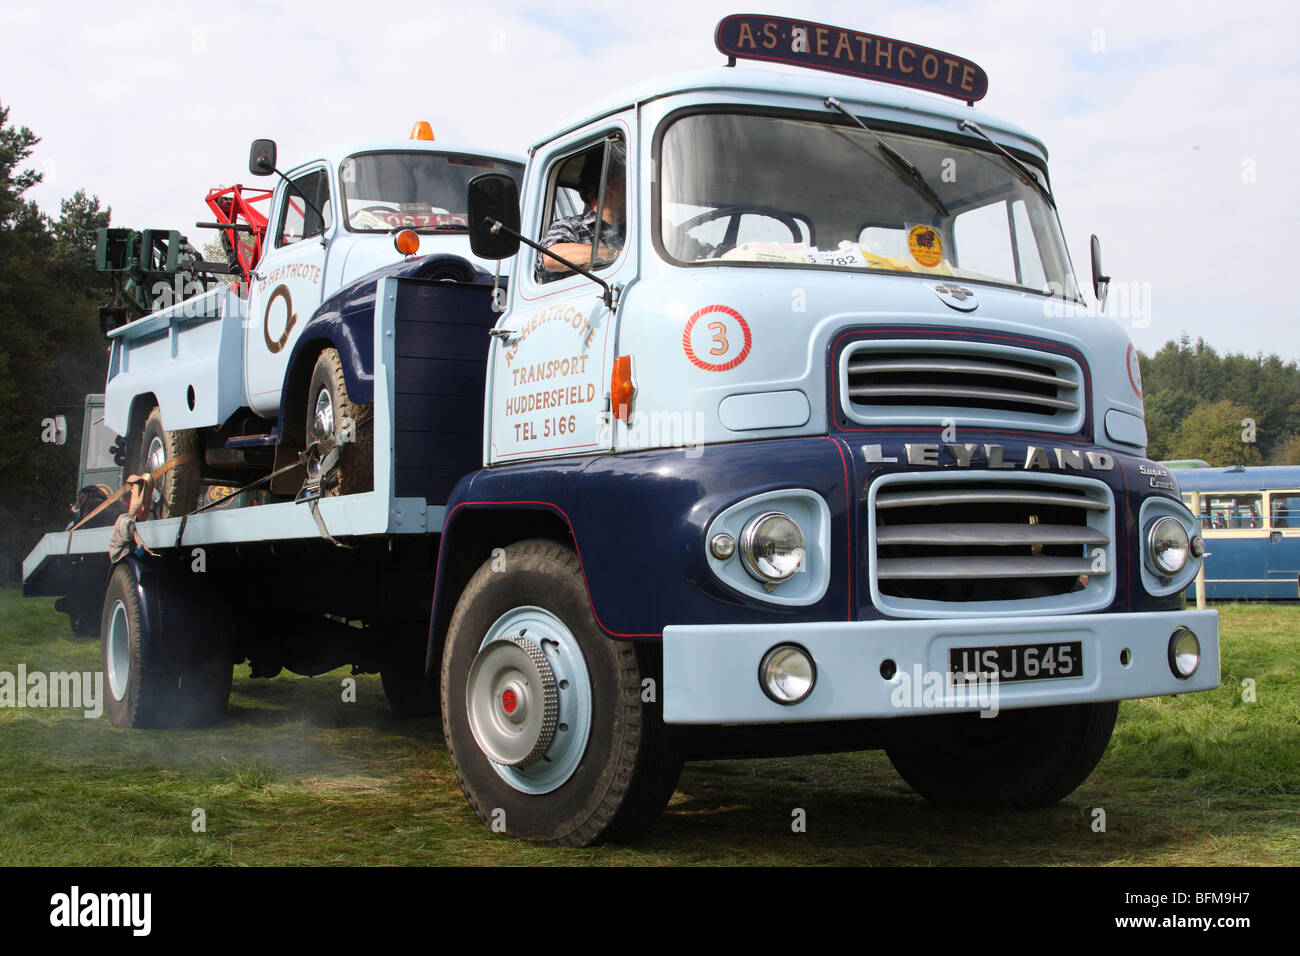 A Leyland HGV at a commercial vehicle show in the U.K. - Stock Image